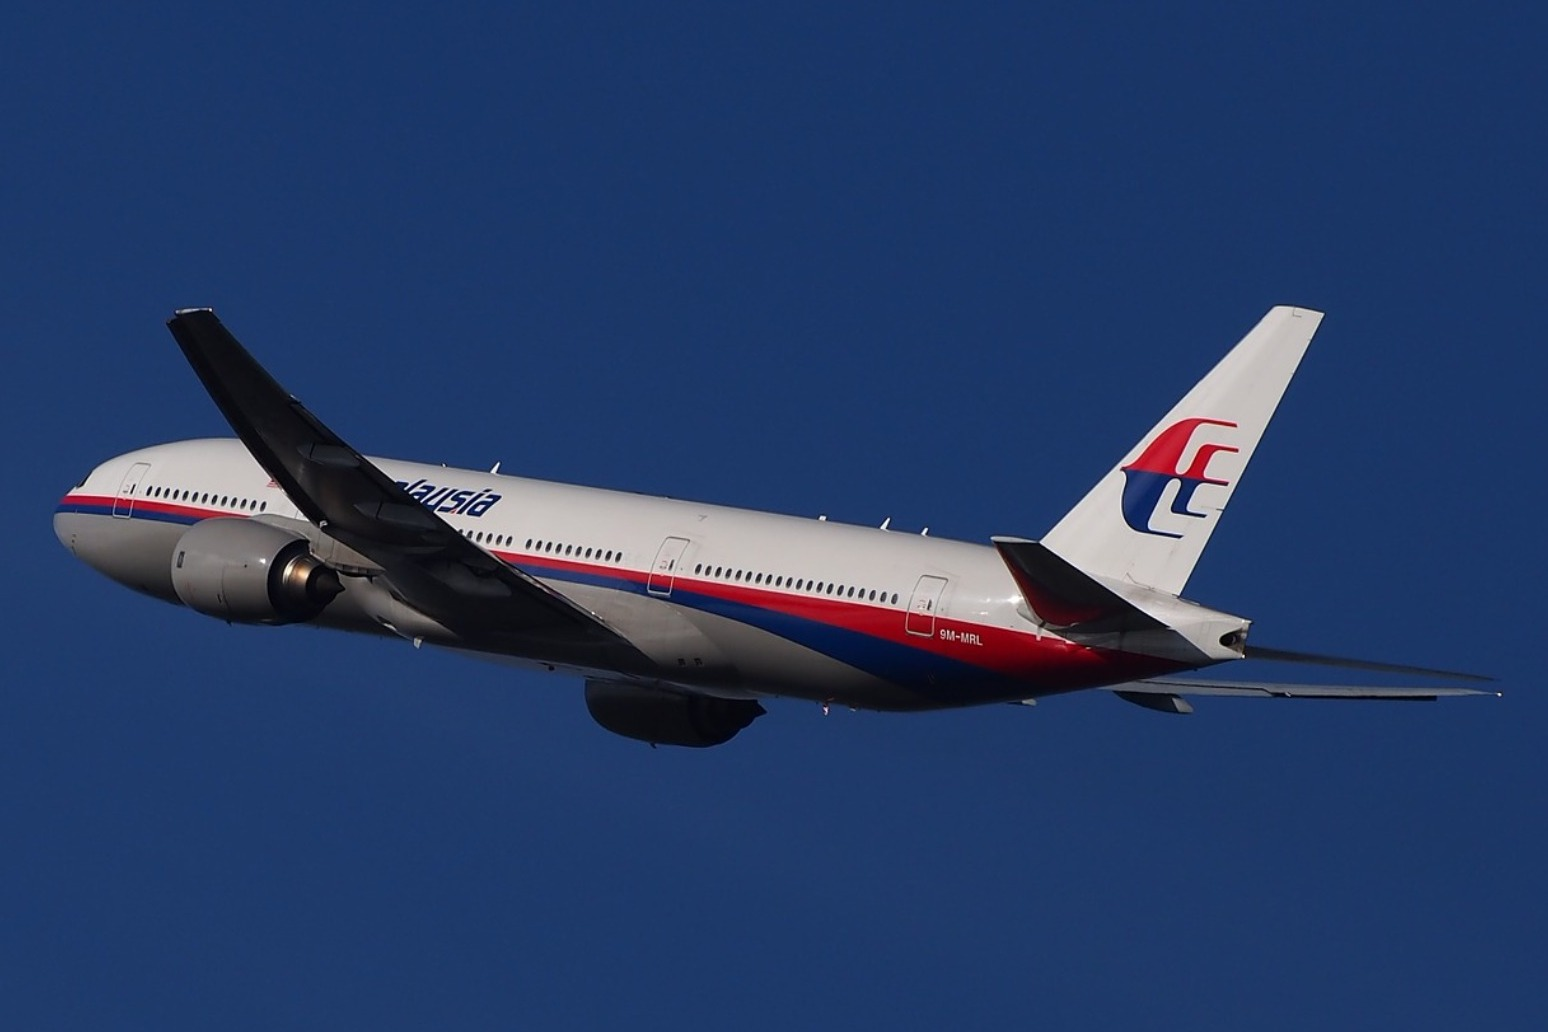 New search launched for missing Malaysian Airlines plane